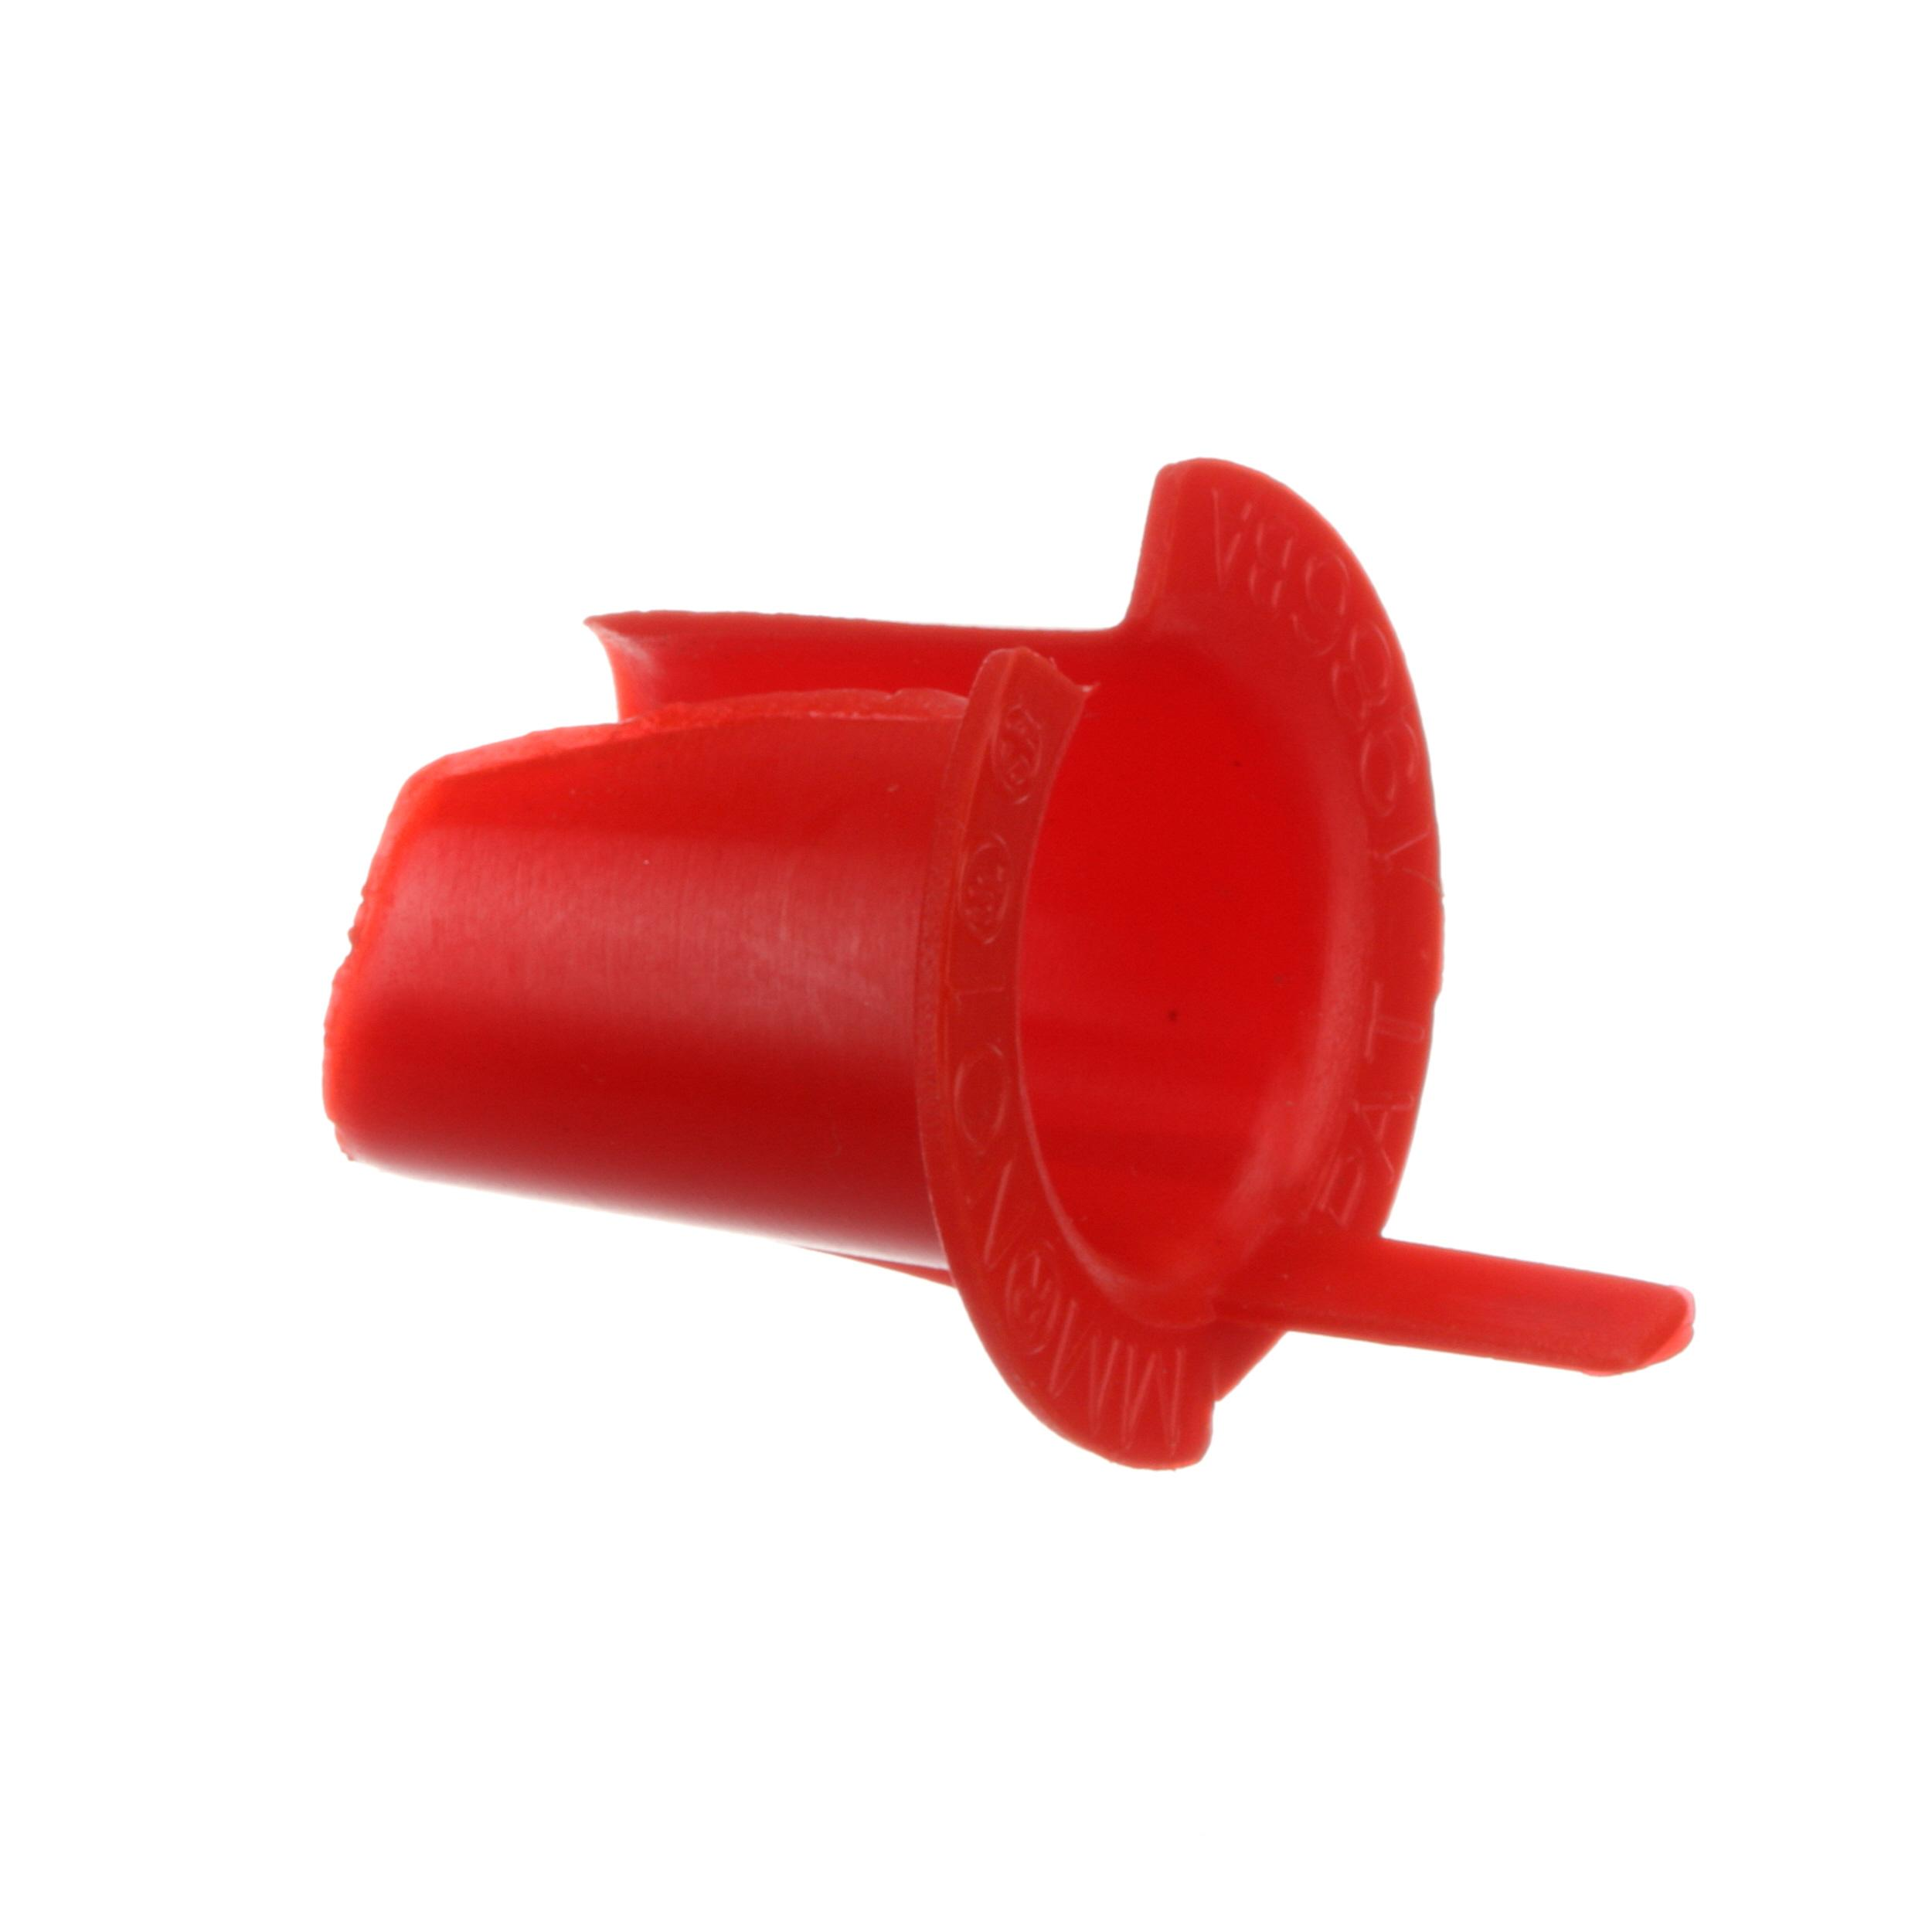 HENNY PENNY ANTI SHORT 3/8 INCH